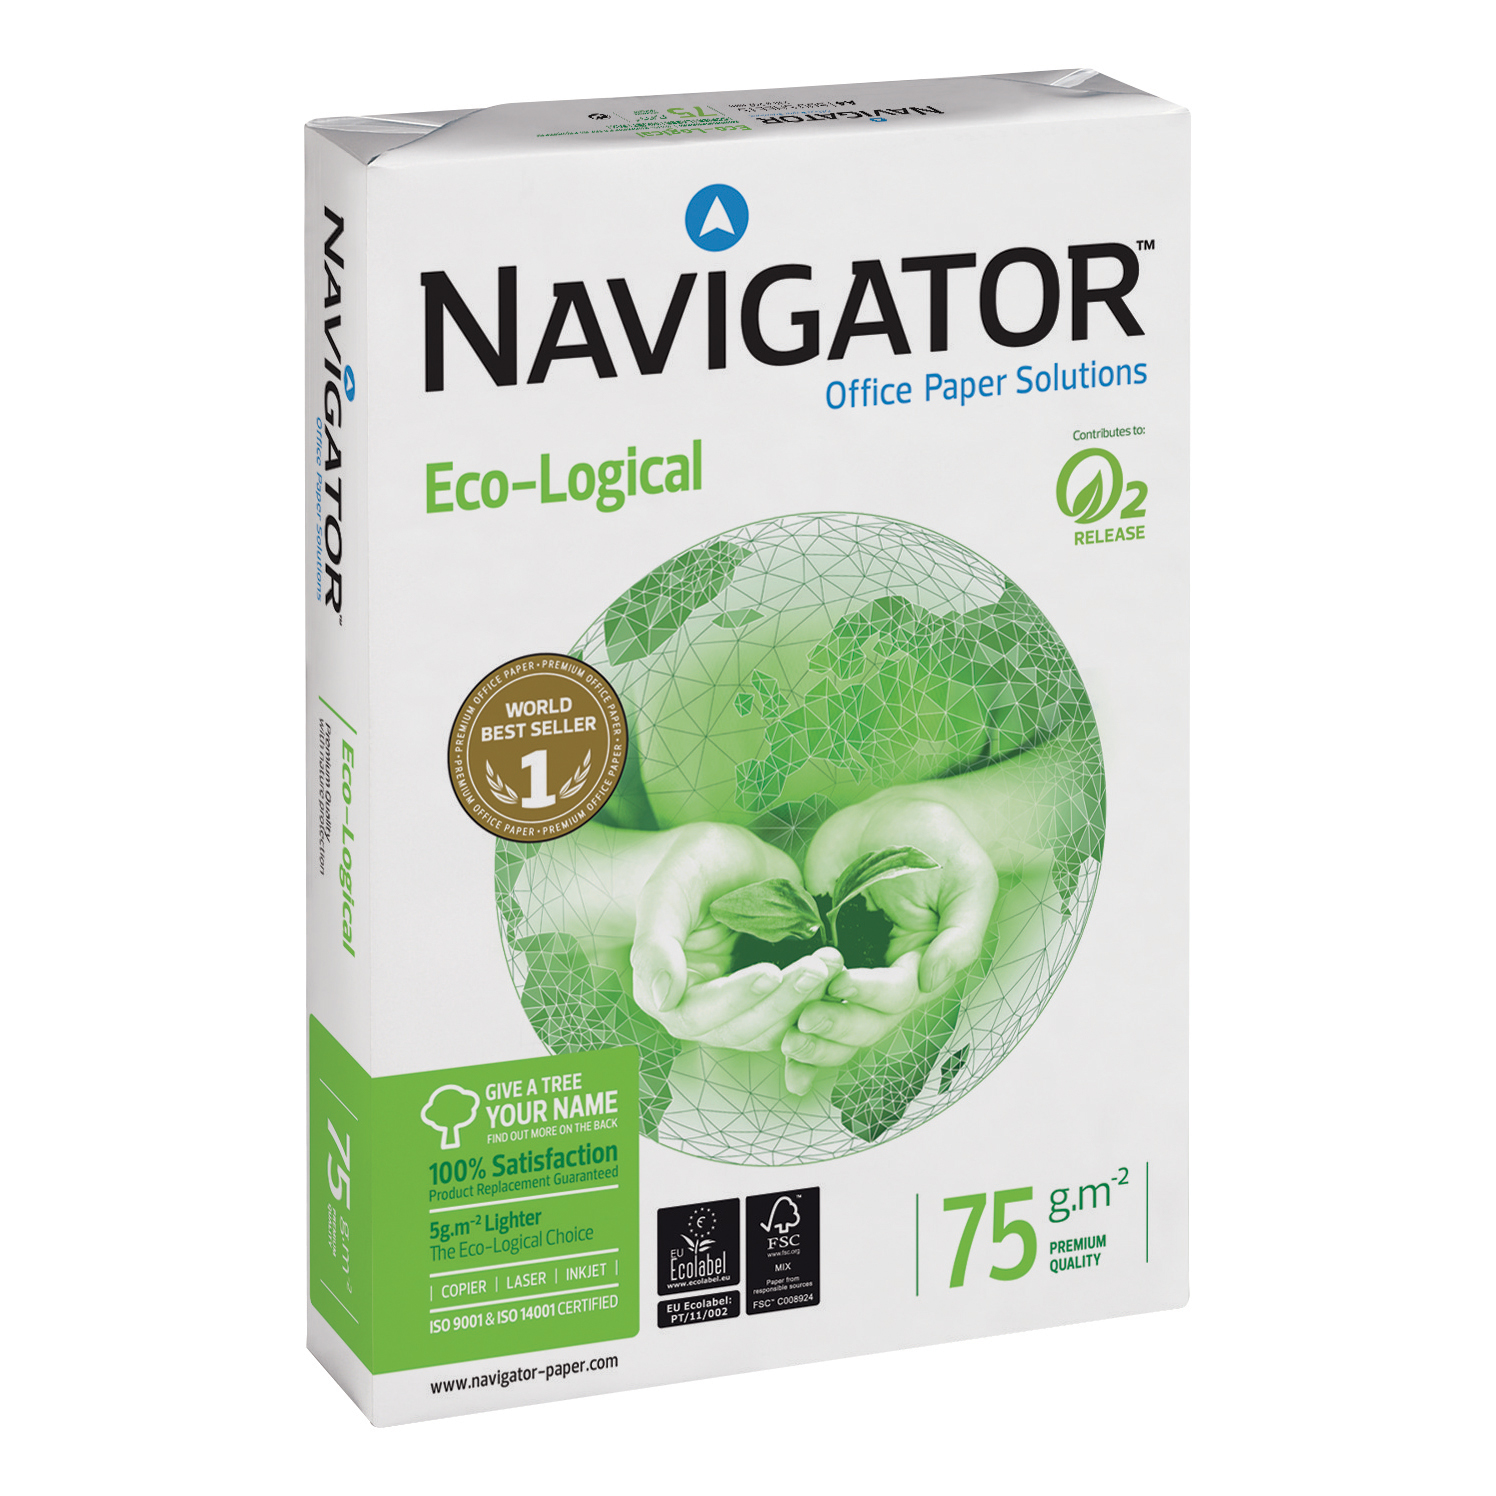 Navigator Eco-logical Paper FSC Ream-Wrapped 75gsm A4 White Ref NEC0750012 [5 x 500 Sheets]